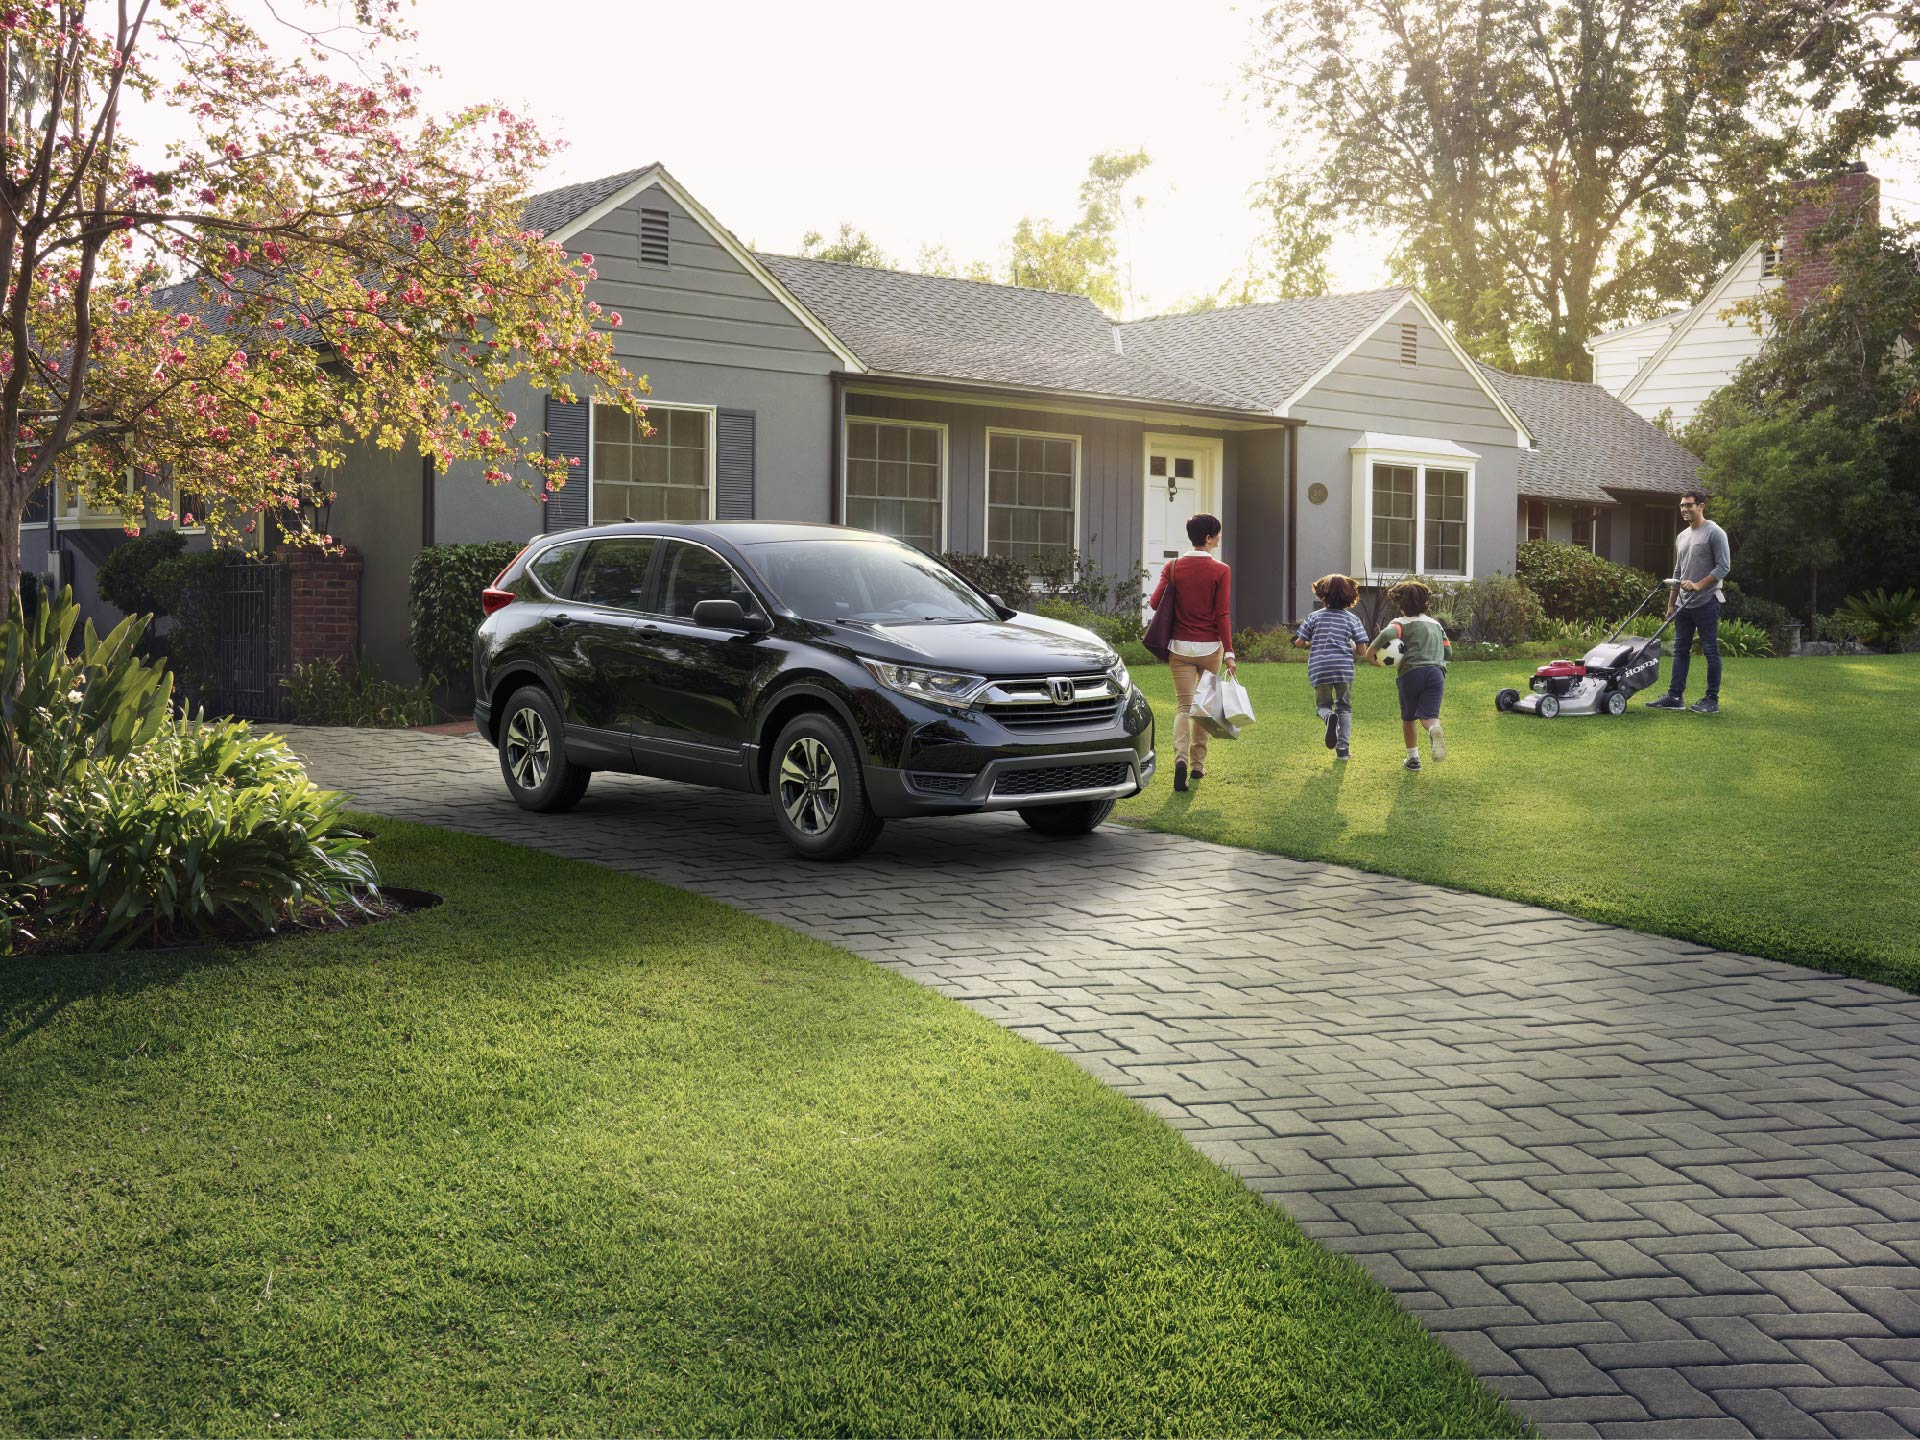 ... Lease Offers Deals U0026 Specials. New Honda CR V On Sale Now At Rairdon  Honda Of Marysville